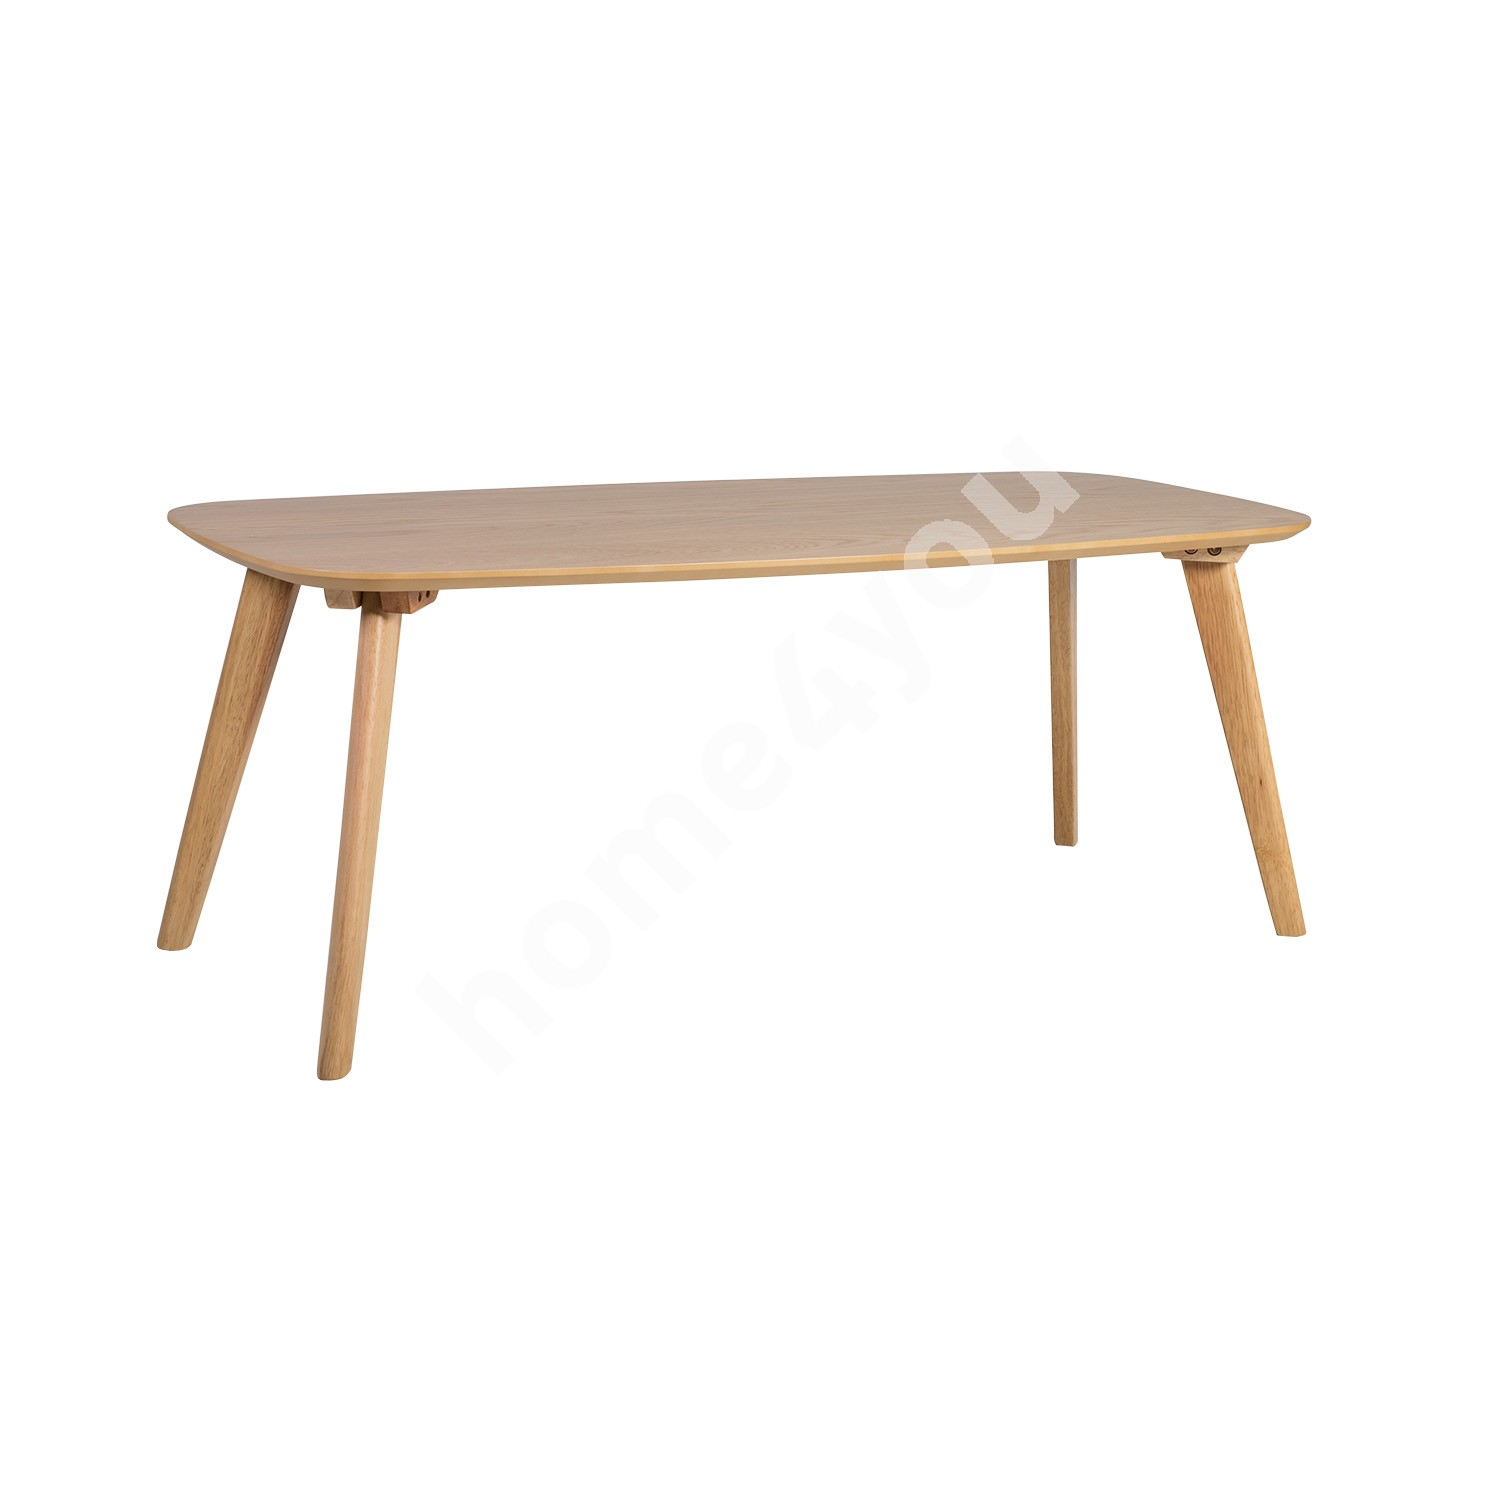 Coffee table DAHLIA 110x50xH42,5cm, table top: MDF with oak veneer, legs and apron: rubber wood, color: oak